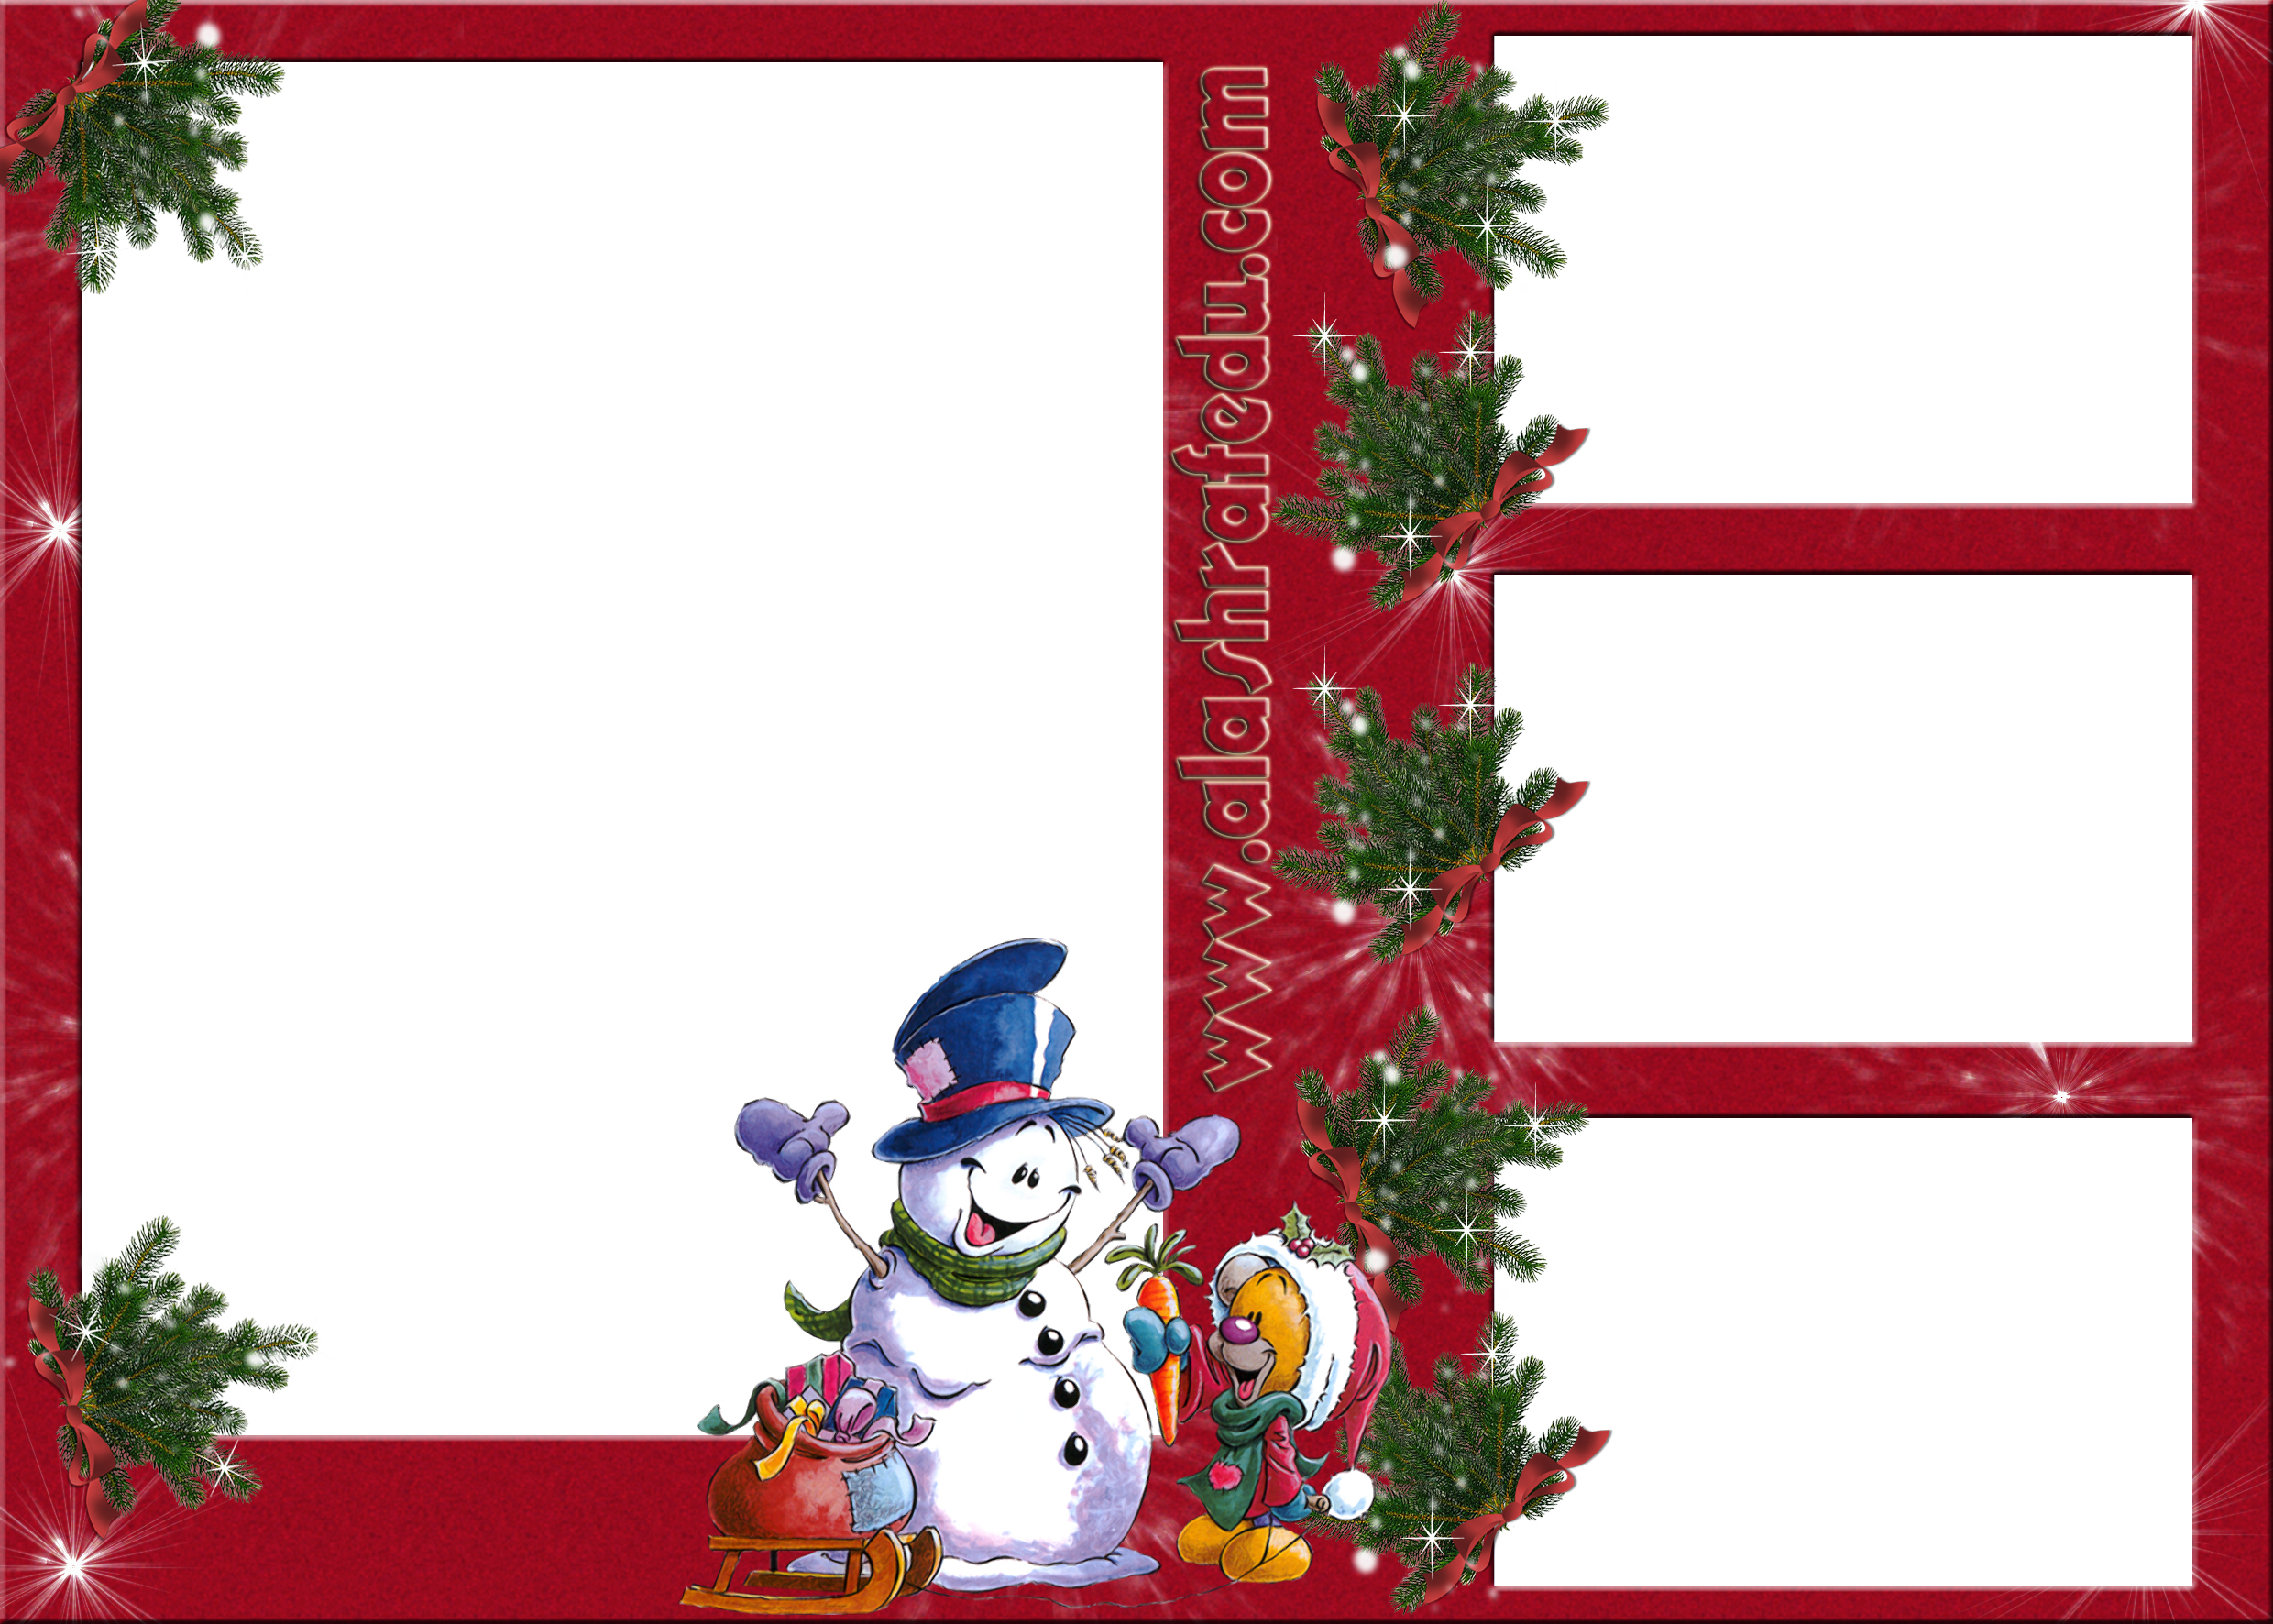 Christmas Snowman Transparent Photo Frame www.alashrafedu.com1